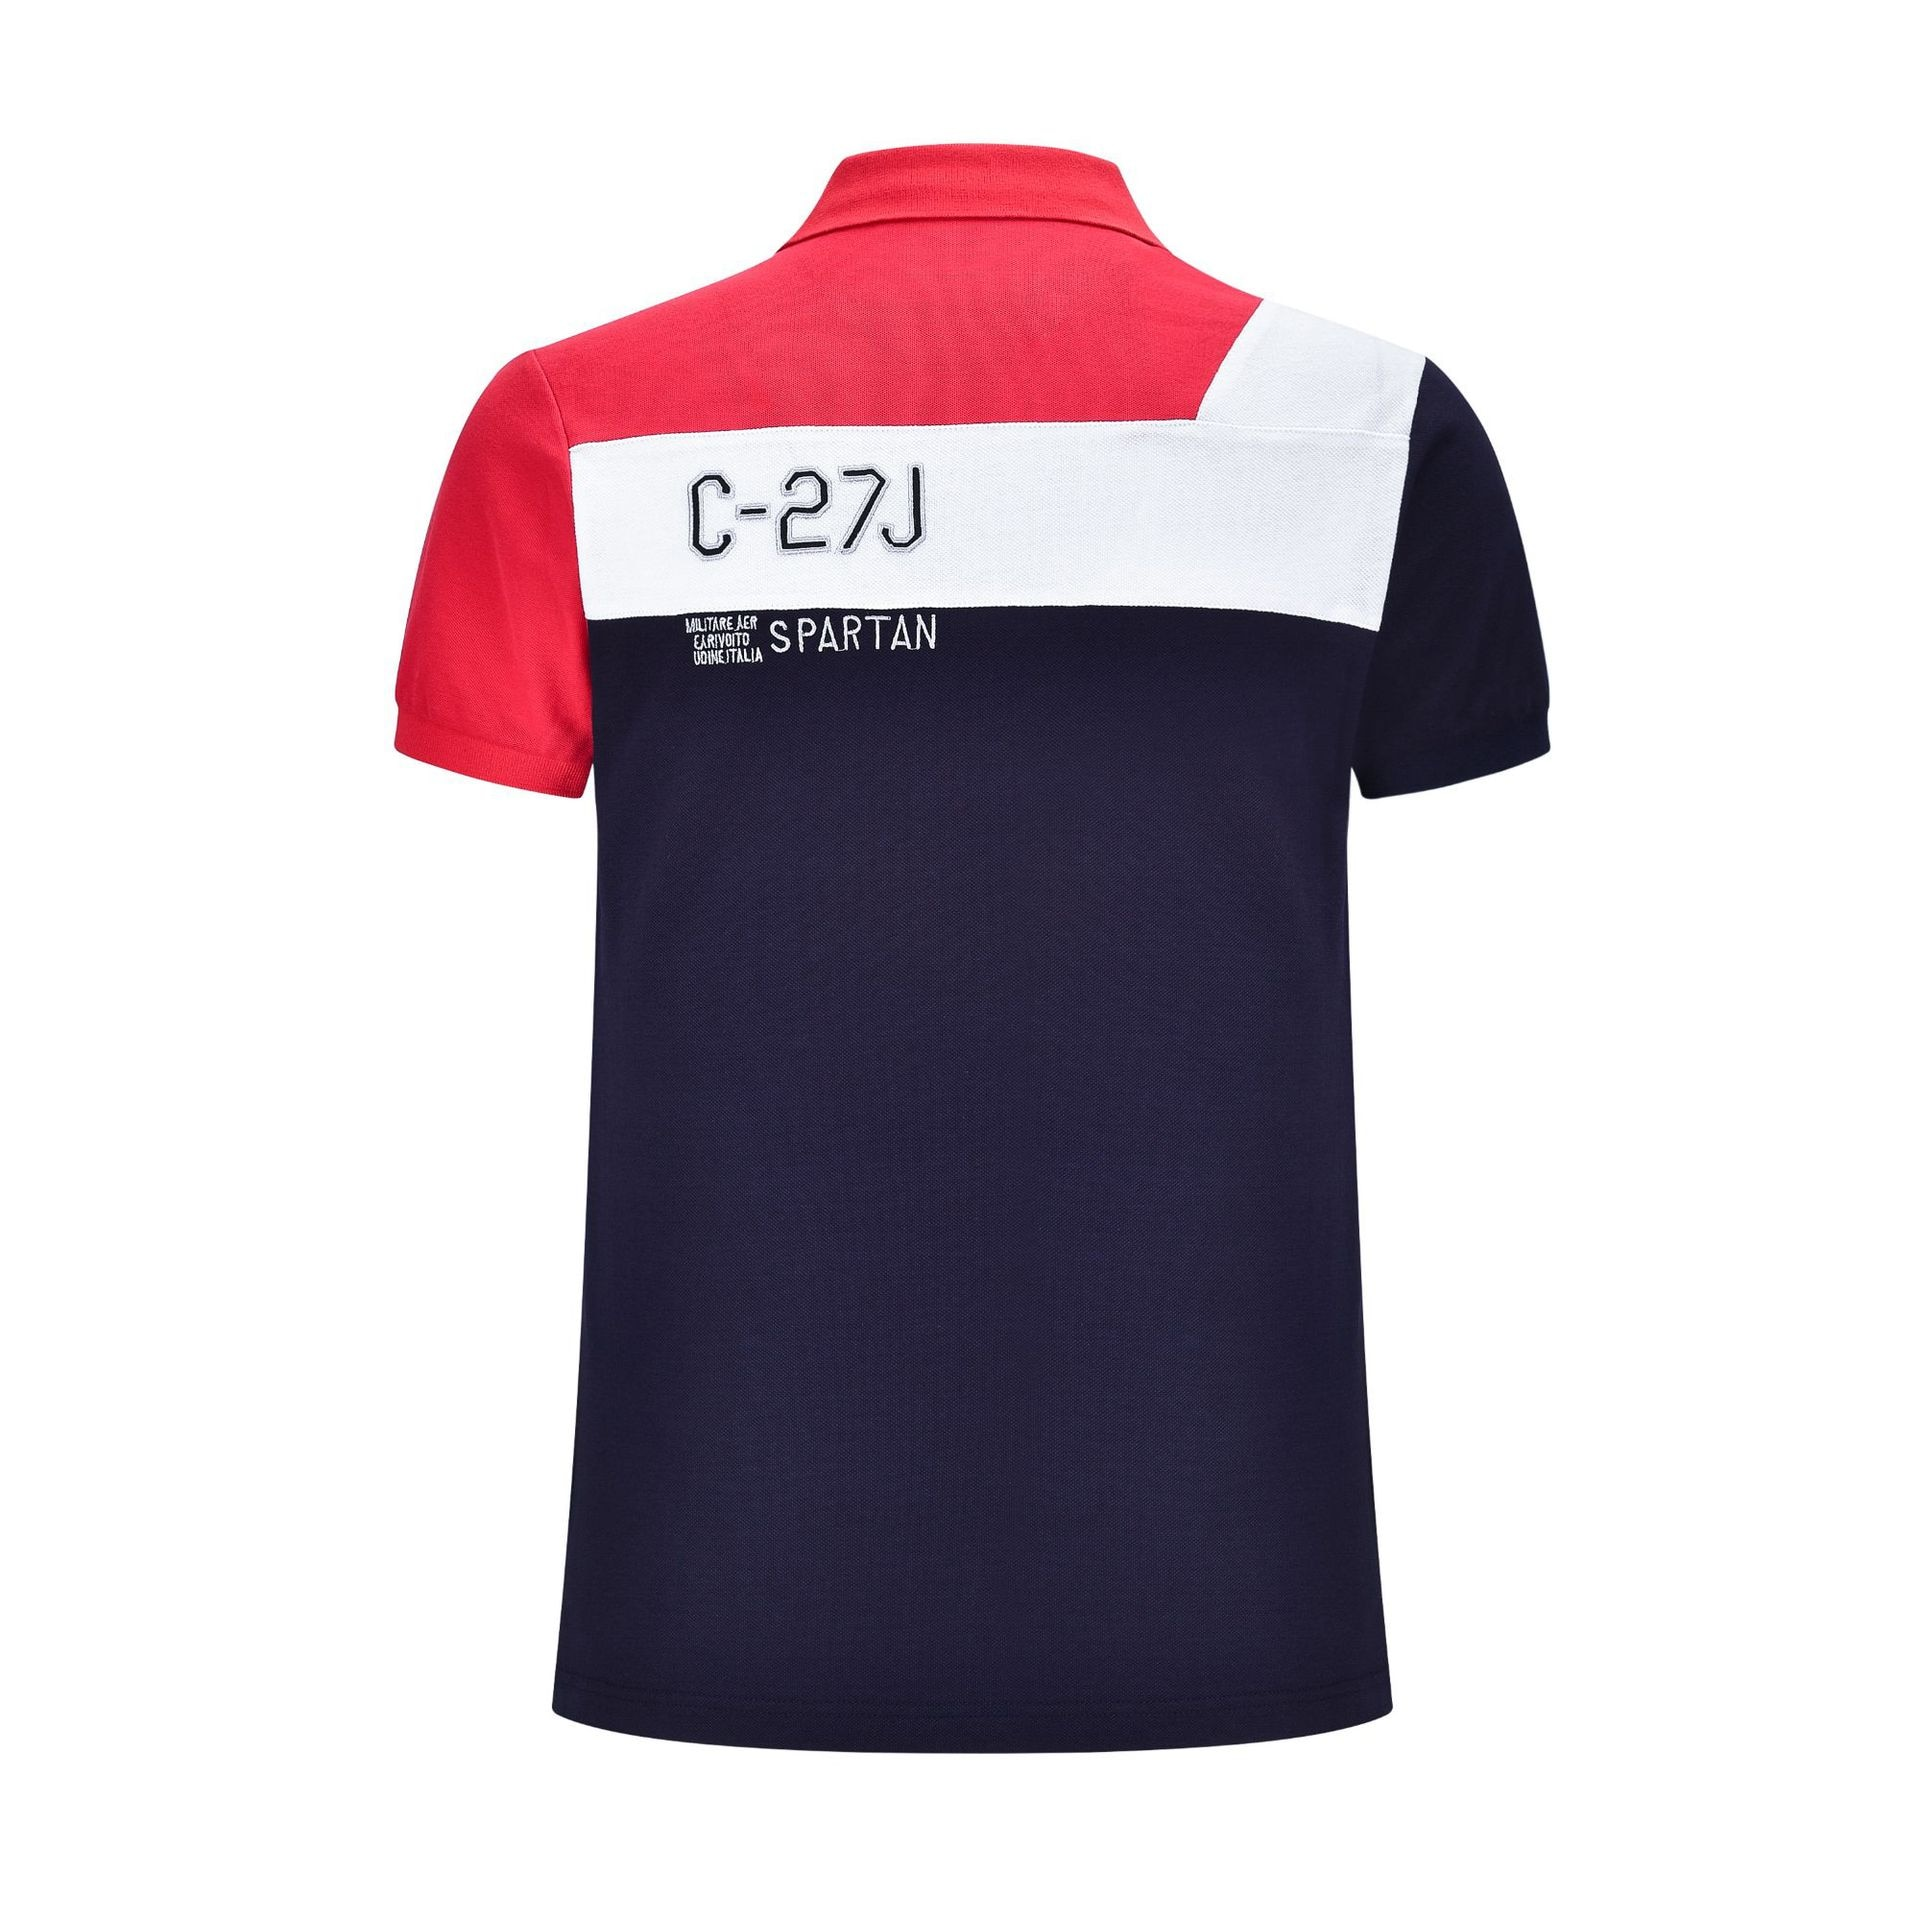 Summer 2021 Polo Cotton Brand Clothing Casual Shirt Tops High Quality Loose Men Embroidered Lapel New Men's Short Sleeve Hombre